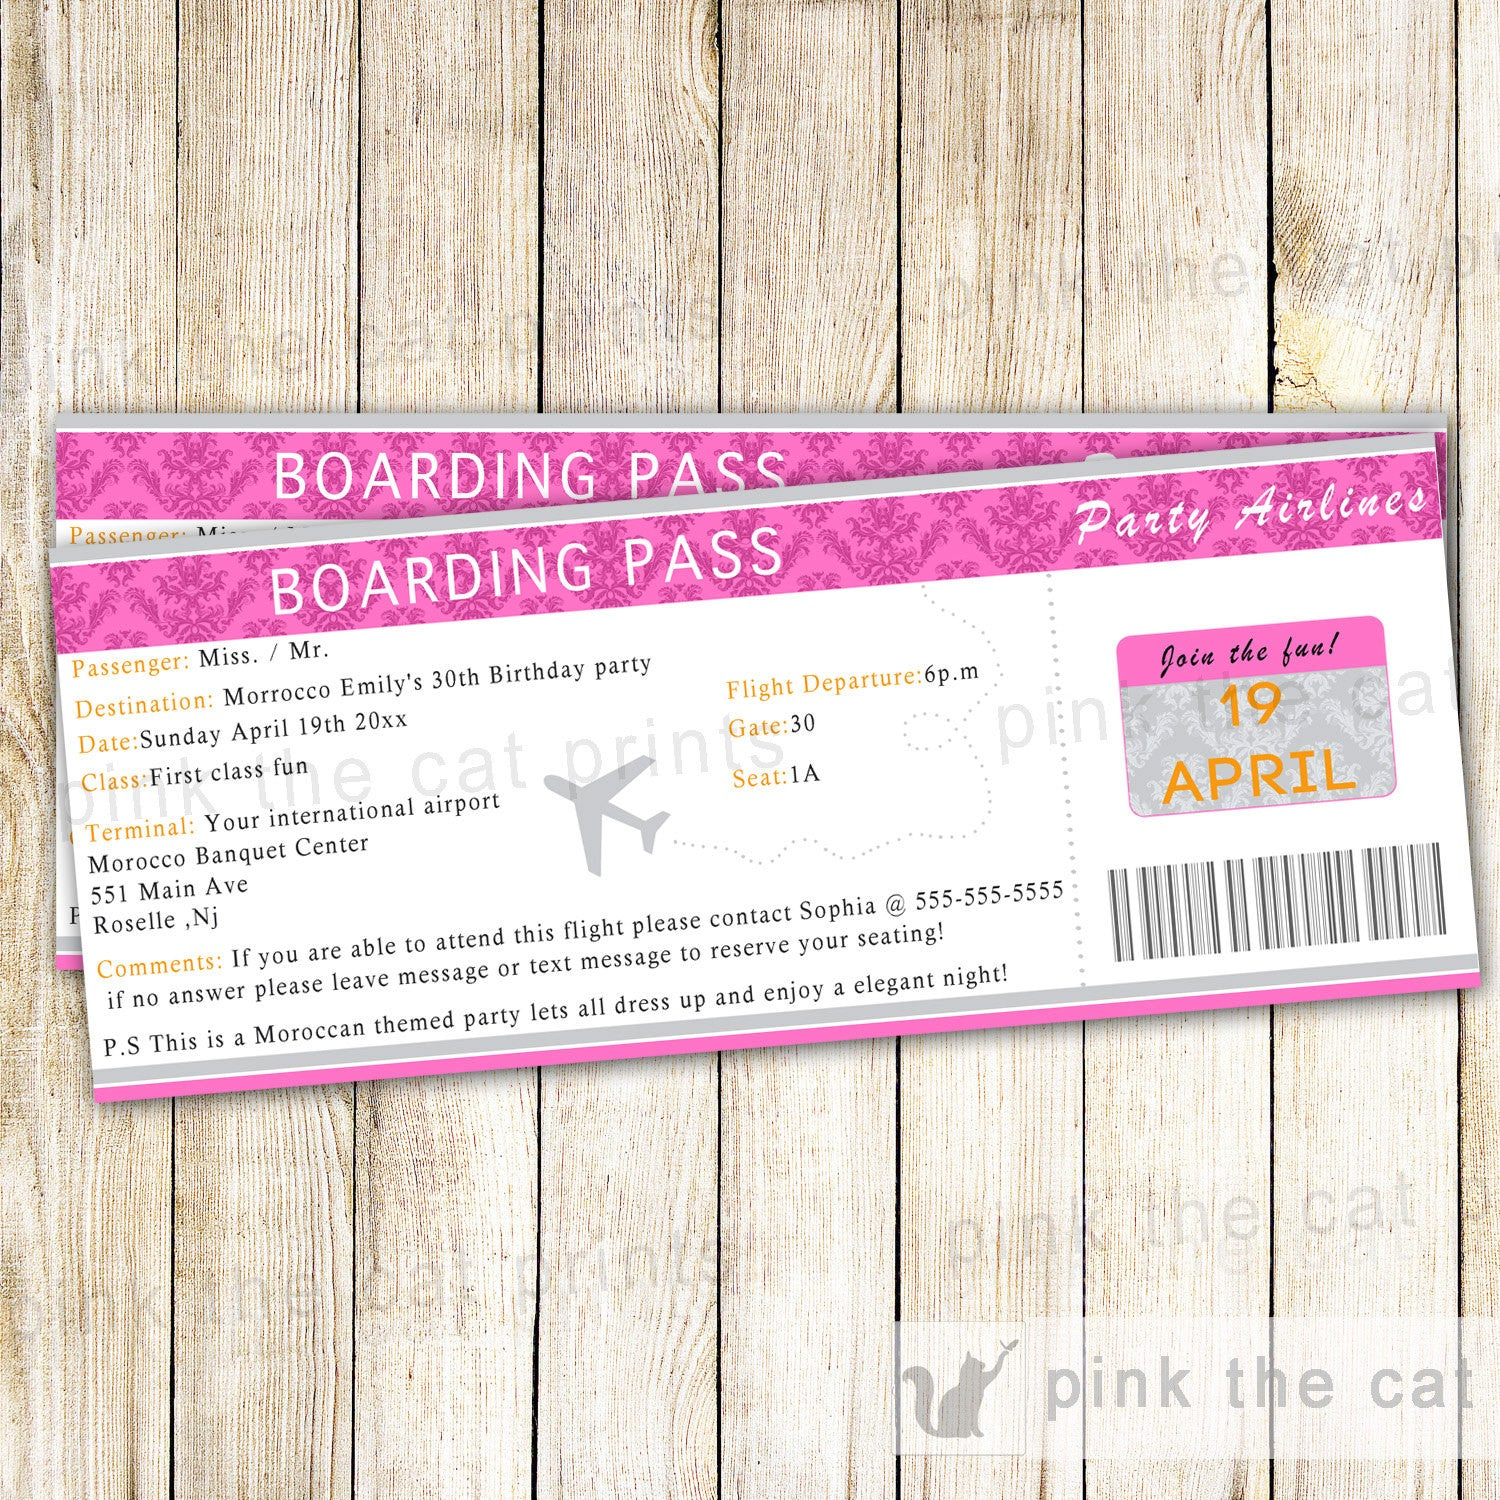 Boarding pass invitation adult birthday party pink the cat boarding pass invitation adult birthday party boarding pass invitation stopboris Gallery